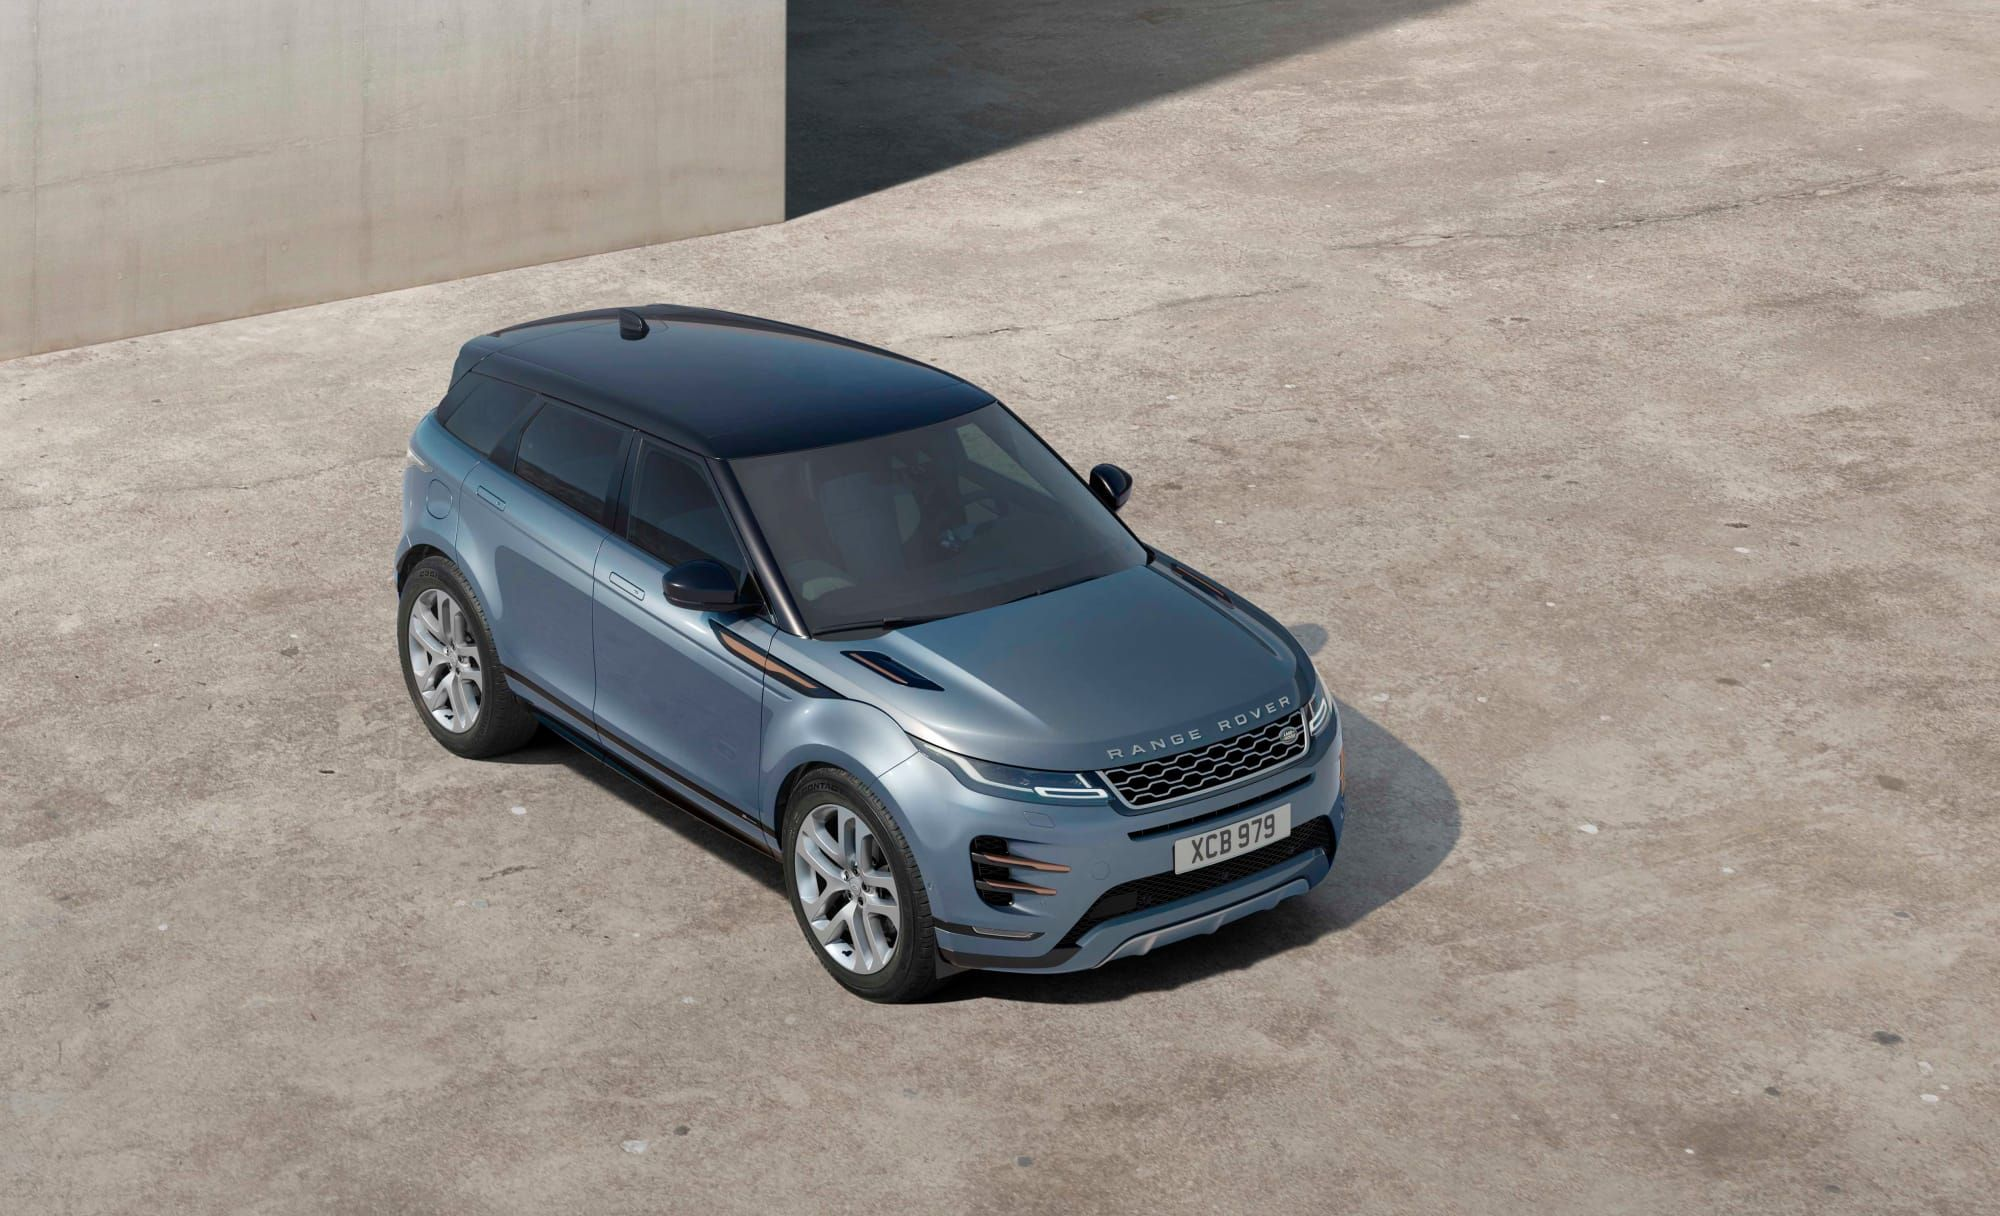 Land Rover Reveals The New Range Rover Evoque Range Rover Evoque